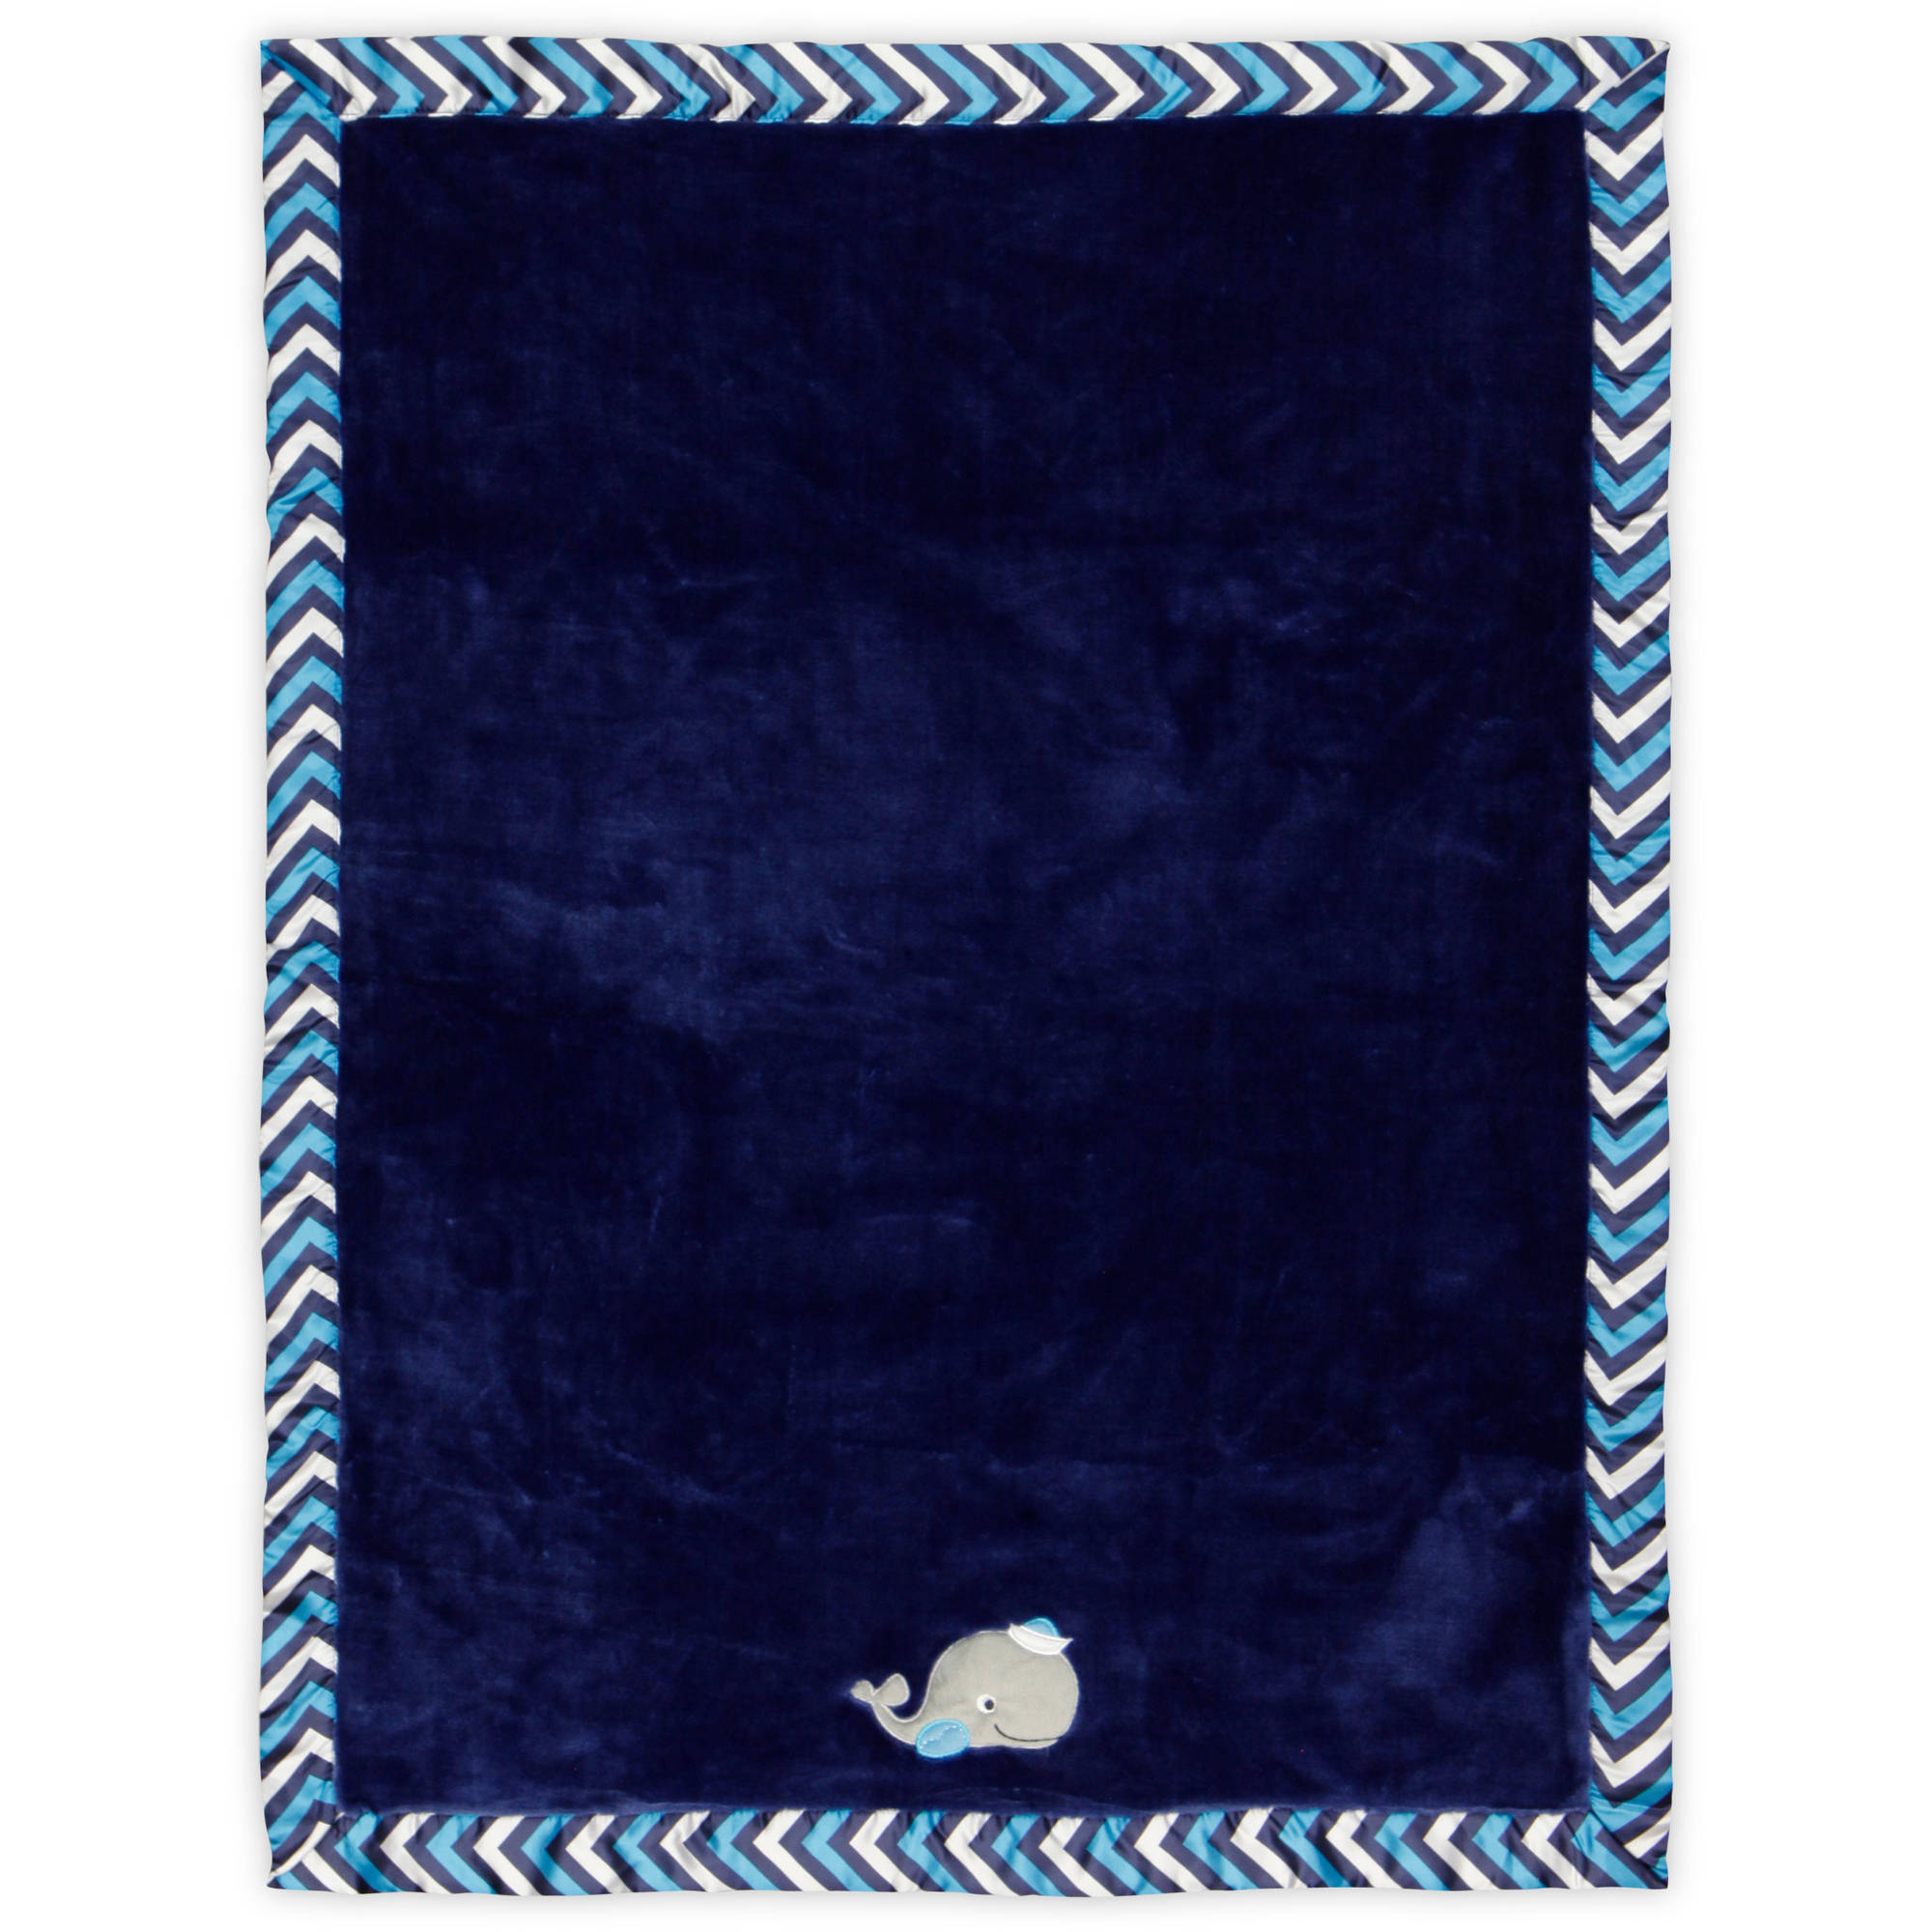 Bananafish Studio Anchors Away Silky Solid Blanket